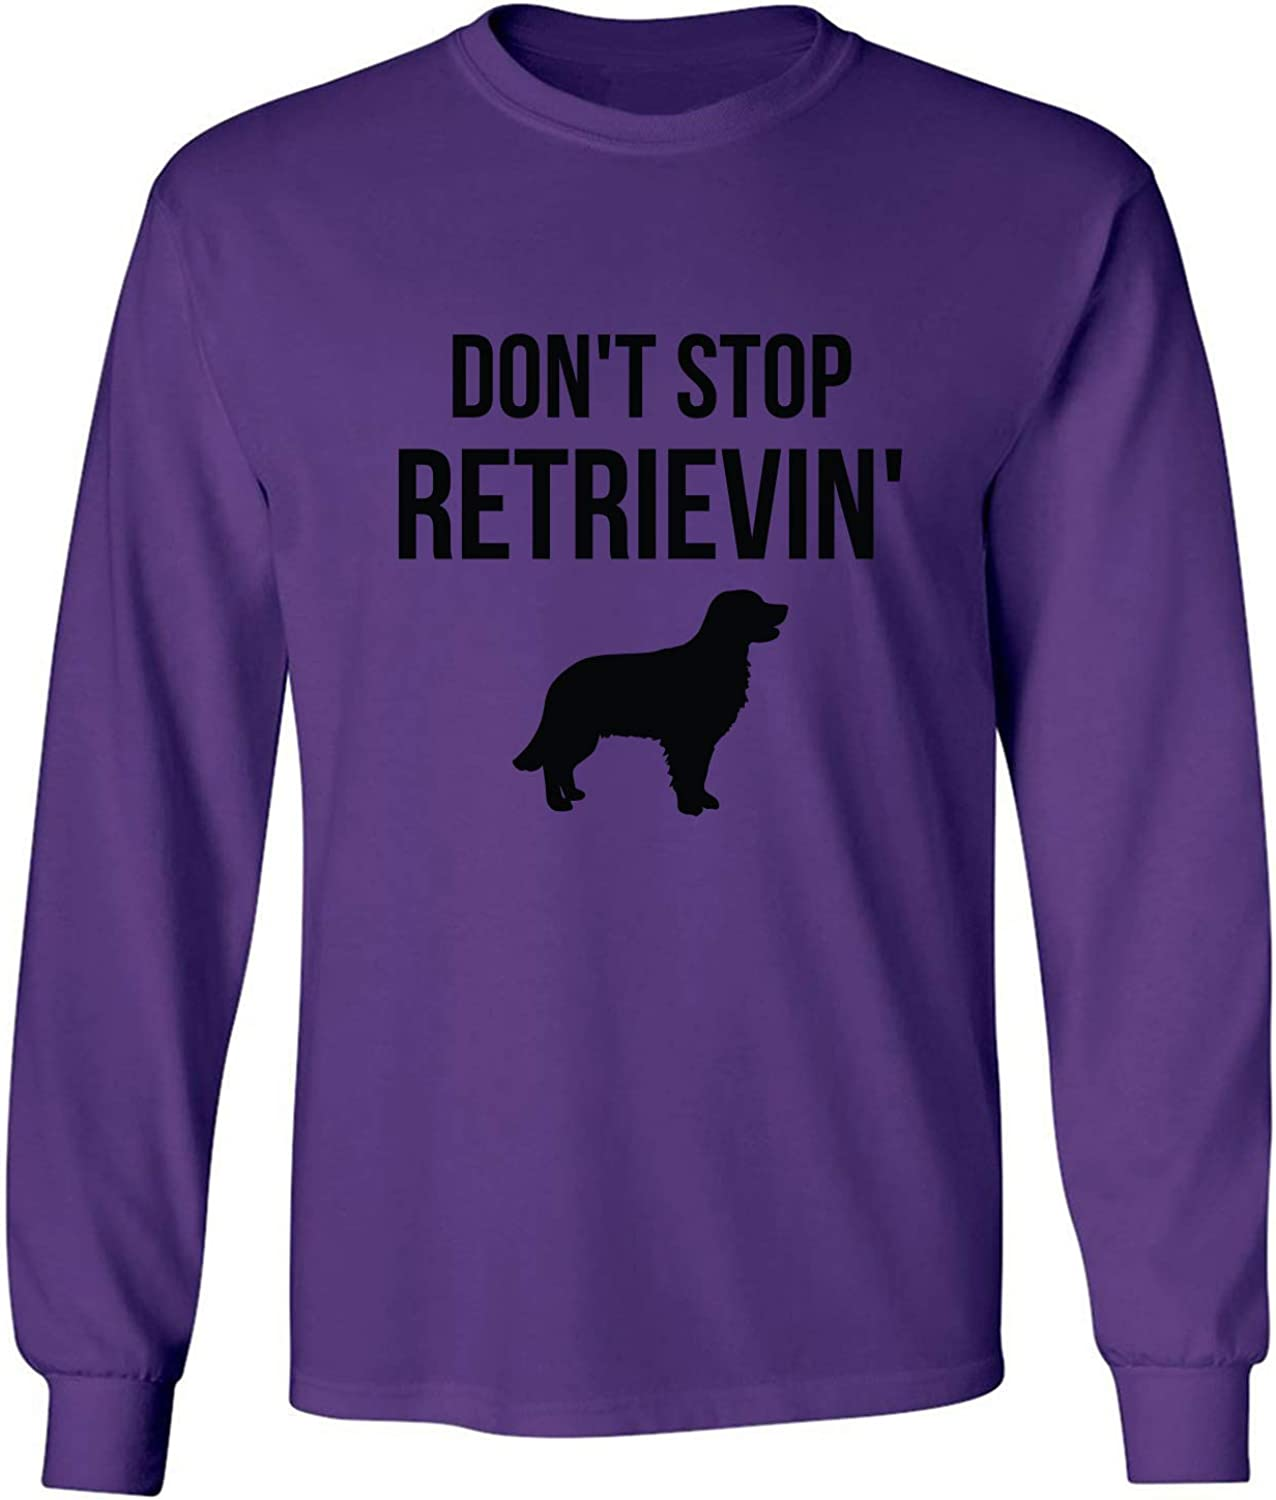 Don't Stop Retrievin' Adult Long Sleeve T-Shirt in Purple - XXX-Large